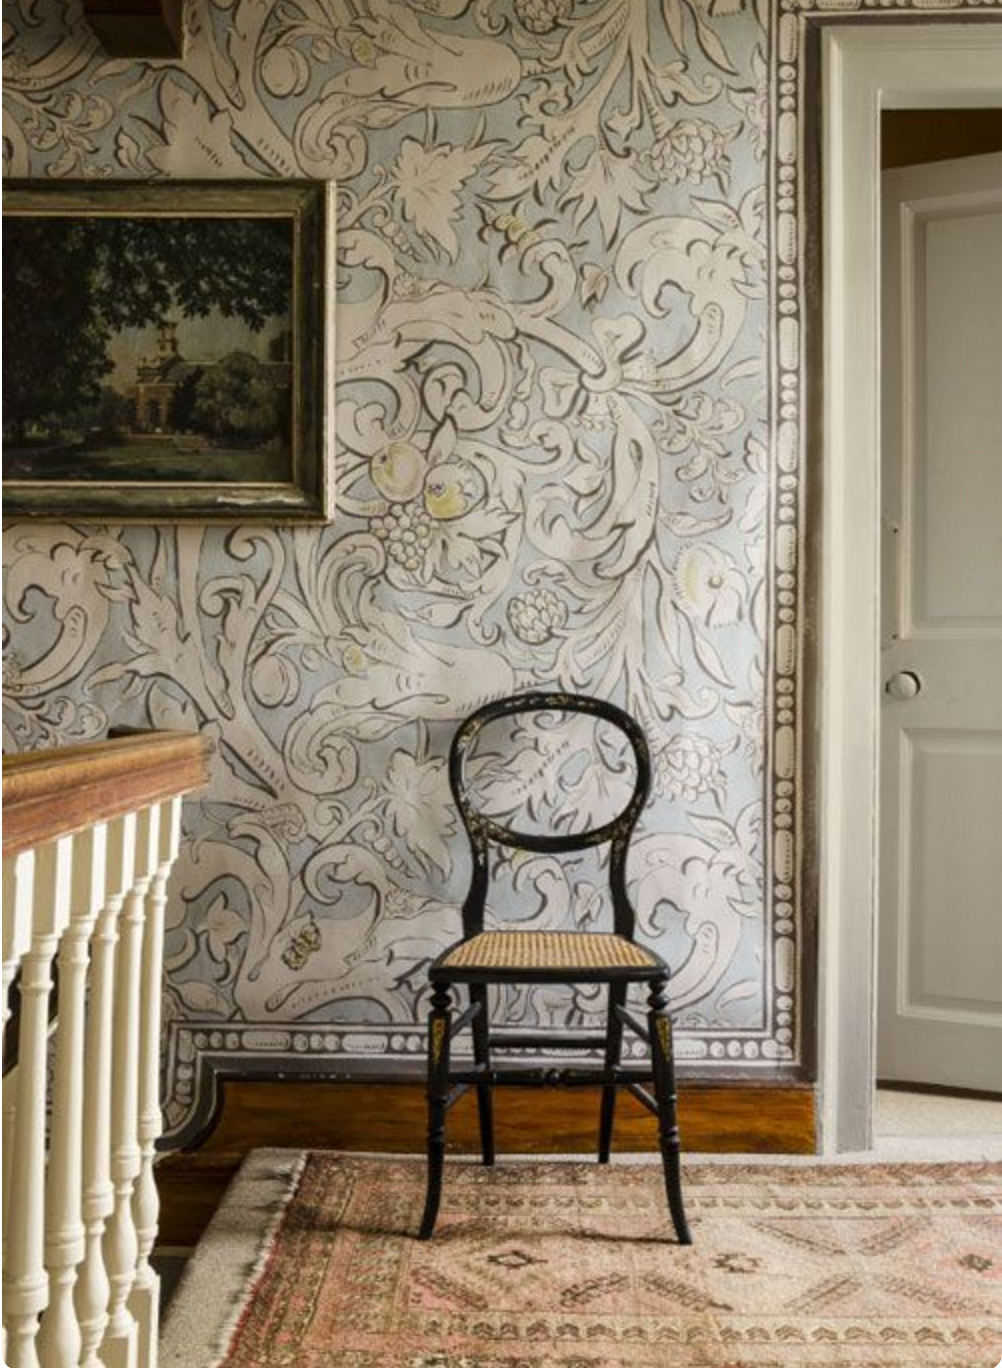 Image of Lewis and Wood wallpaper from Joanna Wood Interior Designer